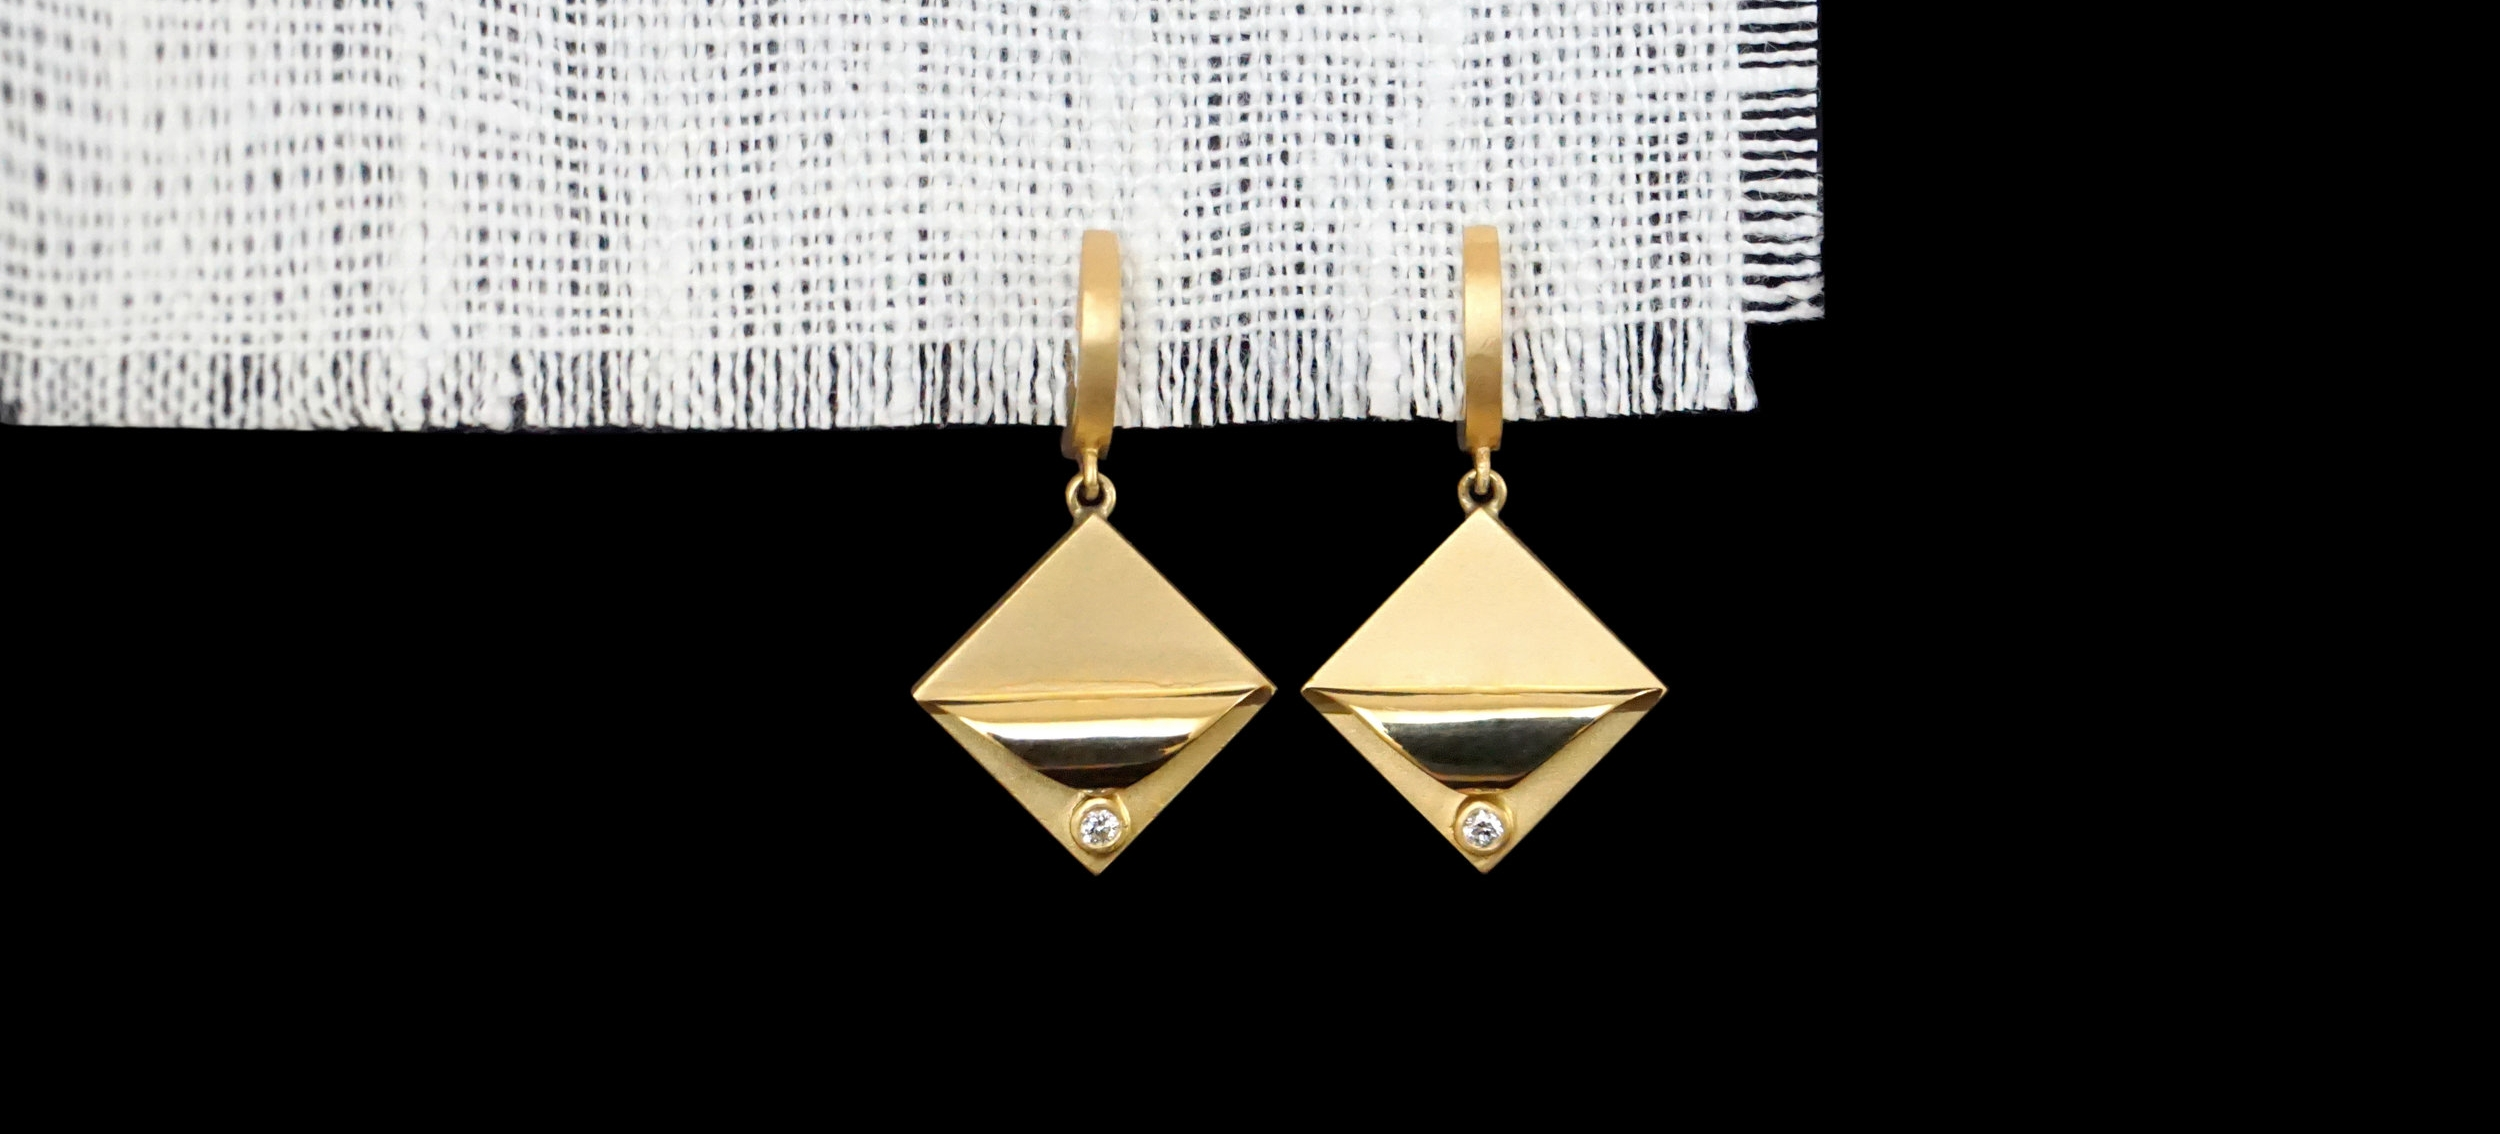 Migration  earrings, hand-forged in California with 18K solid gold